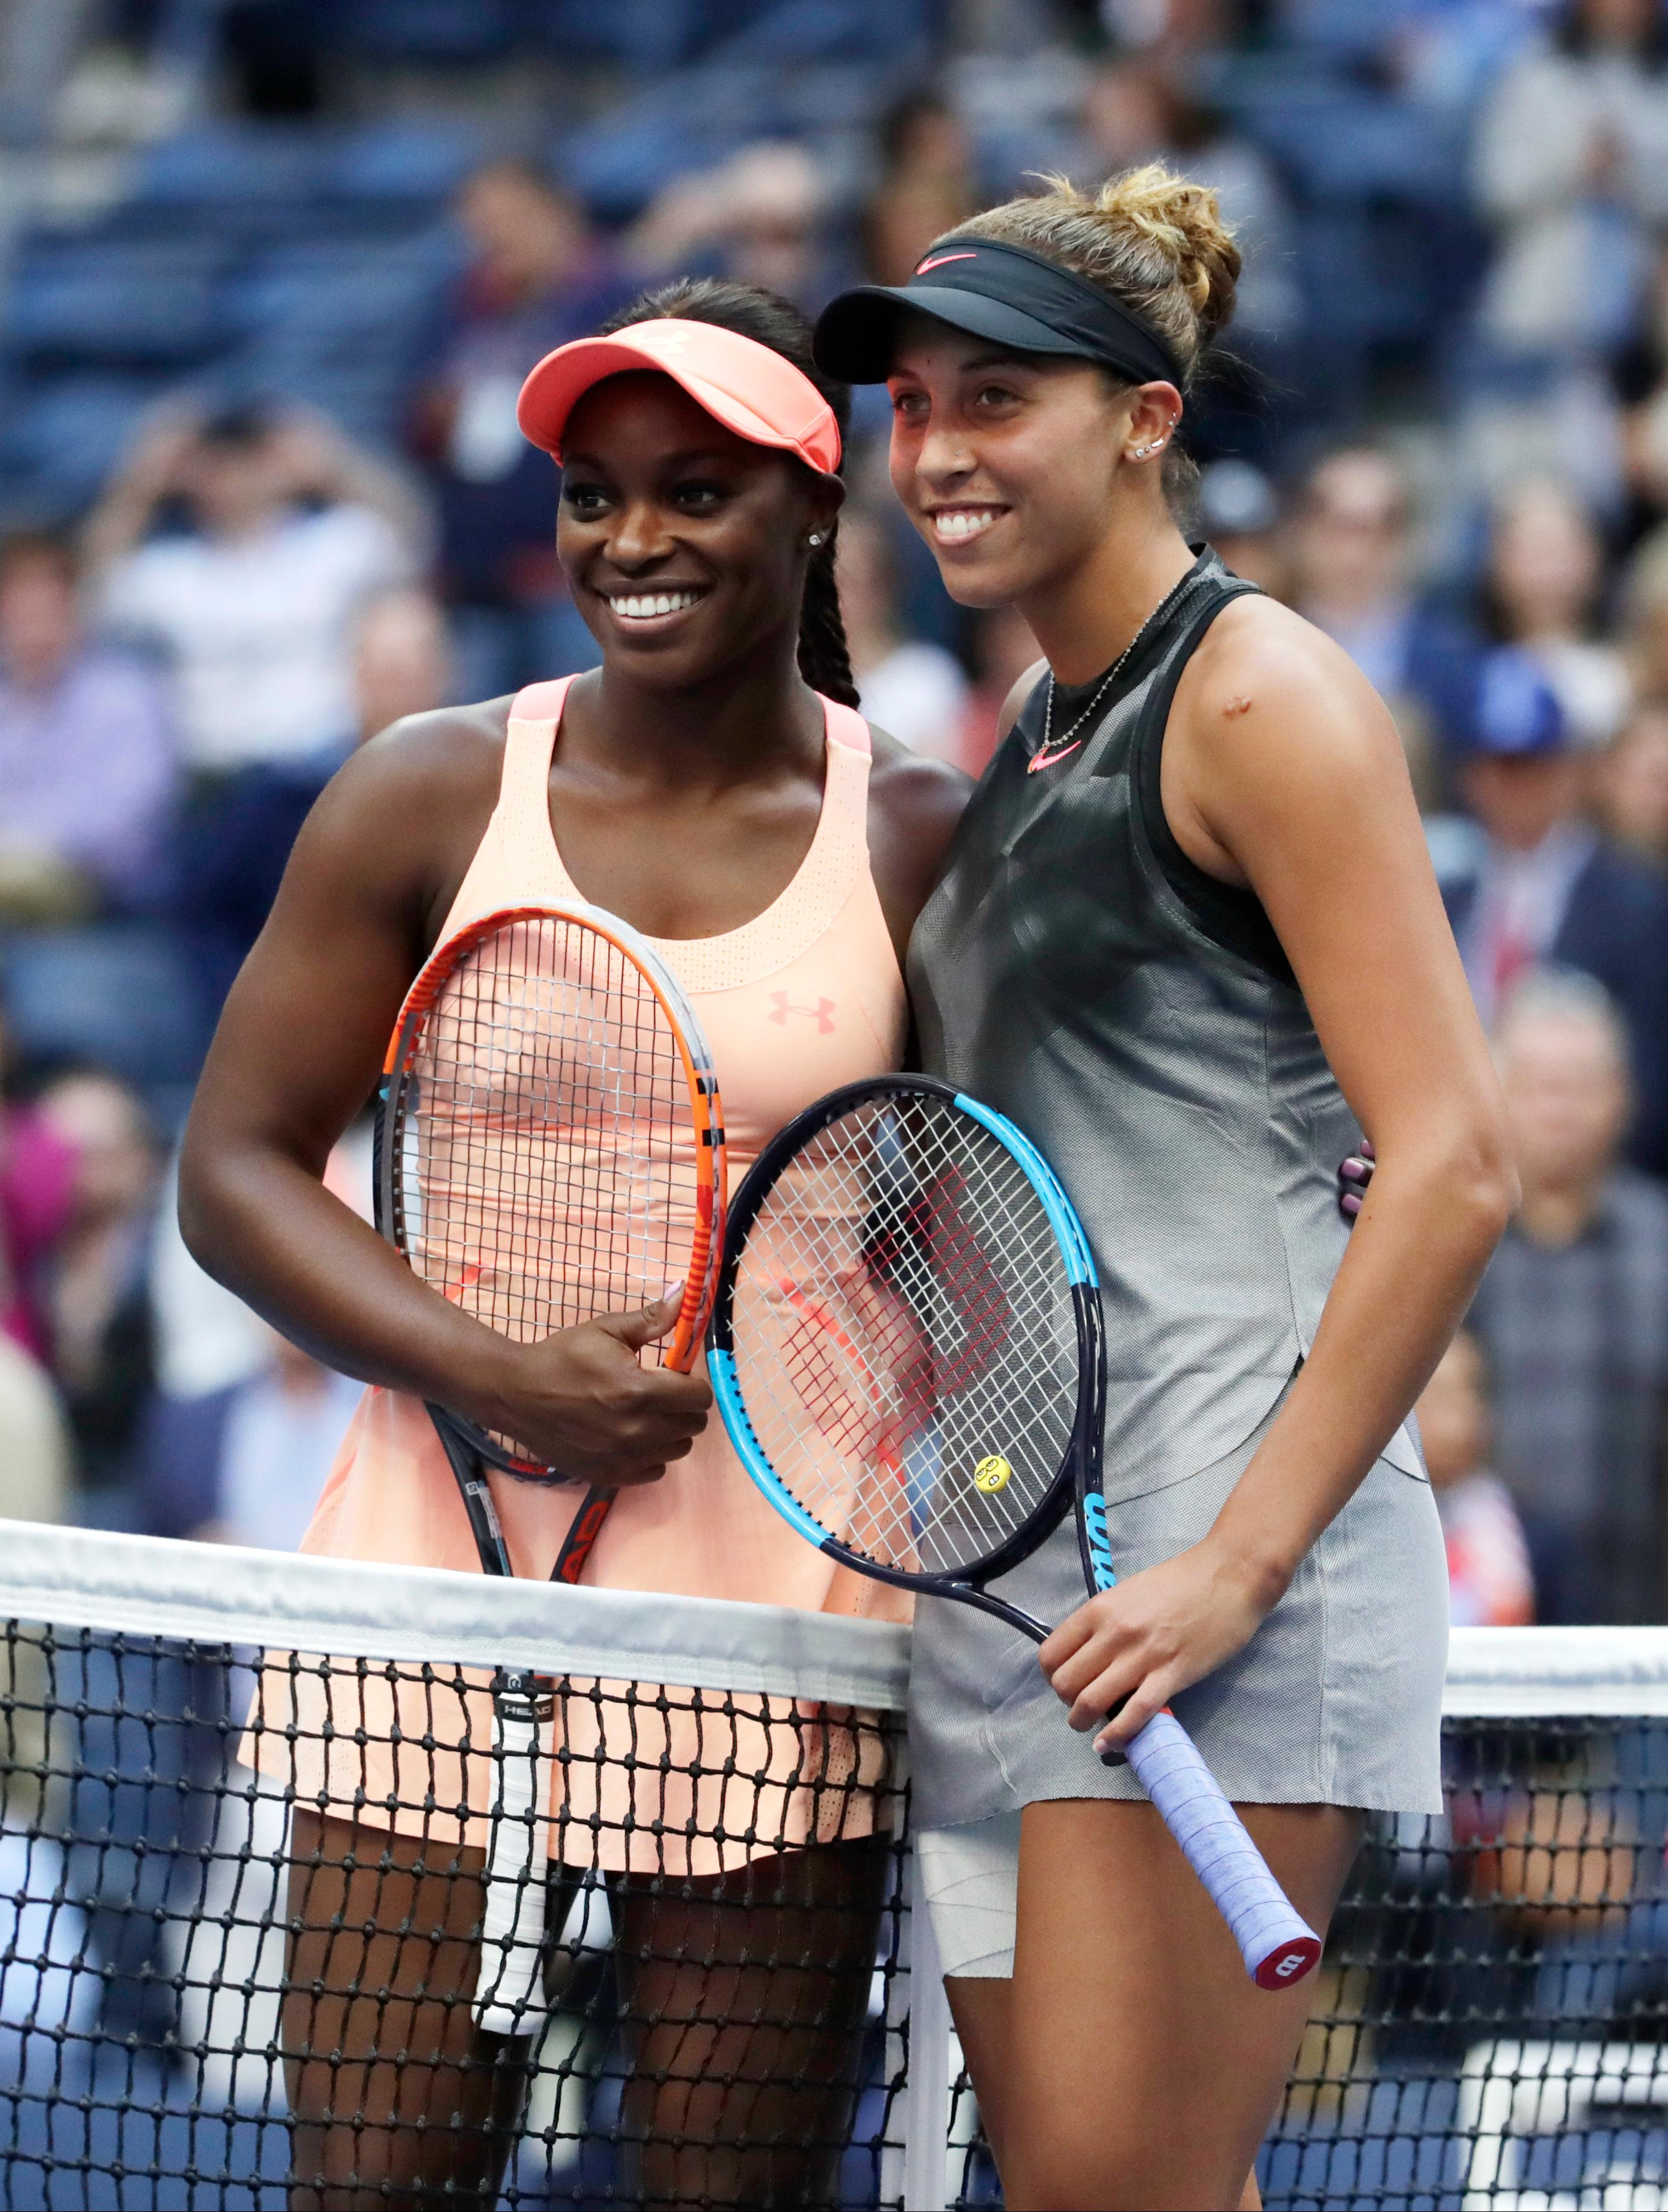 Sloane Stephens, of the United States, left and Madison Keys, of the United States, stand at the net for a photo before playing each other in the championship match of the U.S. Open tennis tournament, Saturday, Sept. 9, 2017, in New York. (AP Photo/Julio Cortez)